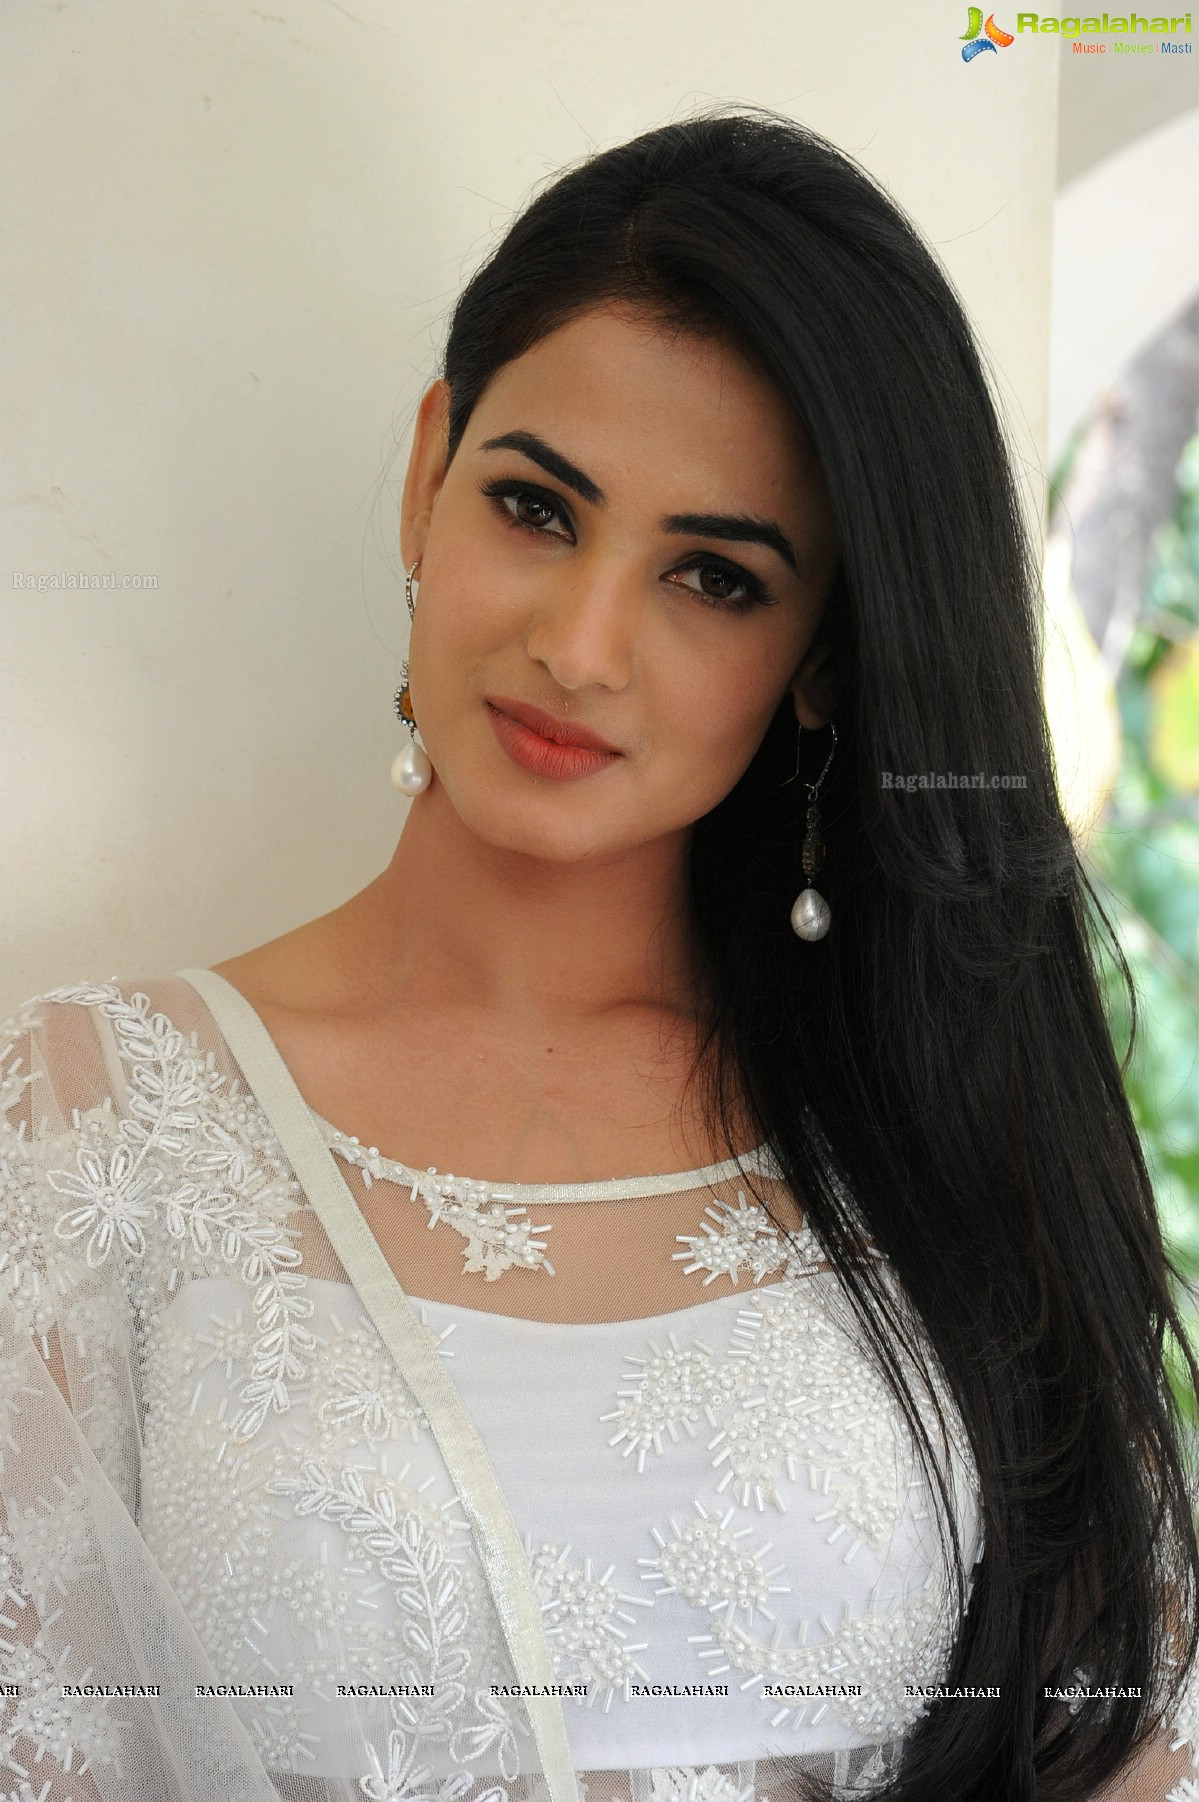 sonal chauhan image 23 | telugu heroines posters,images, photos